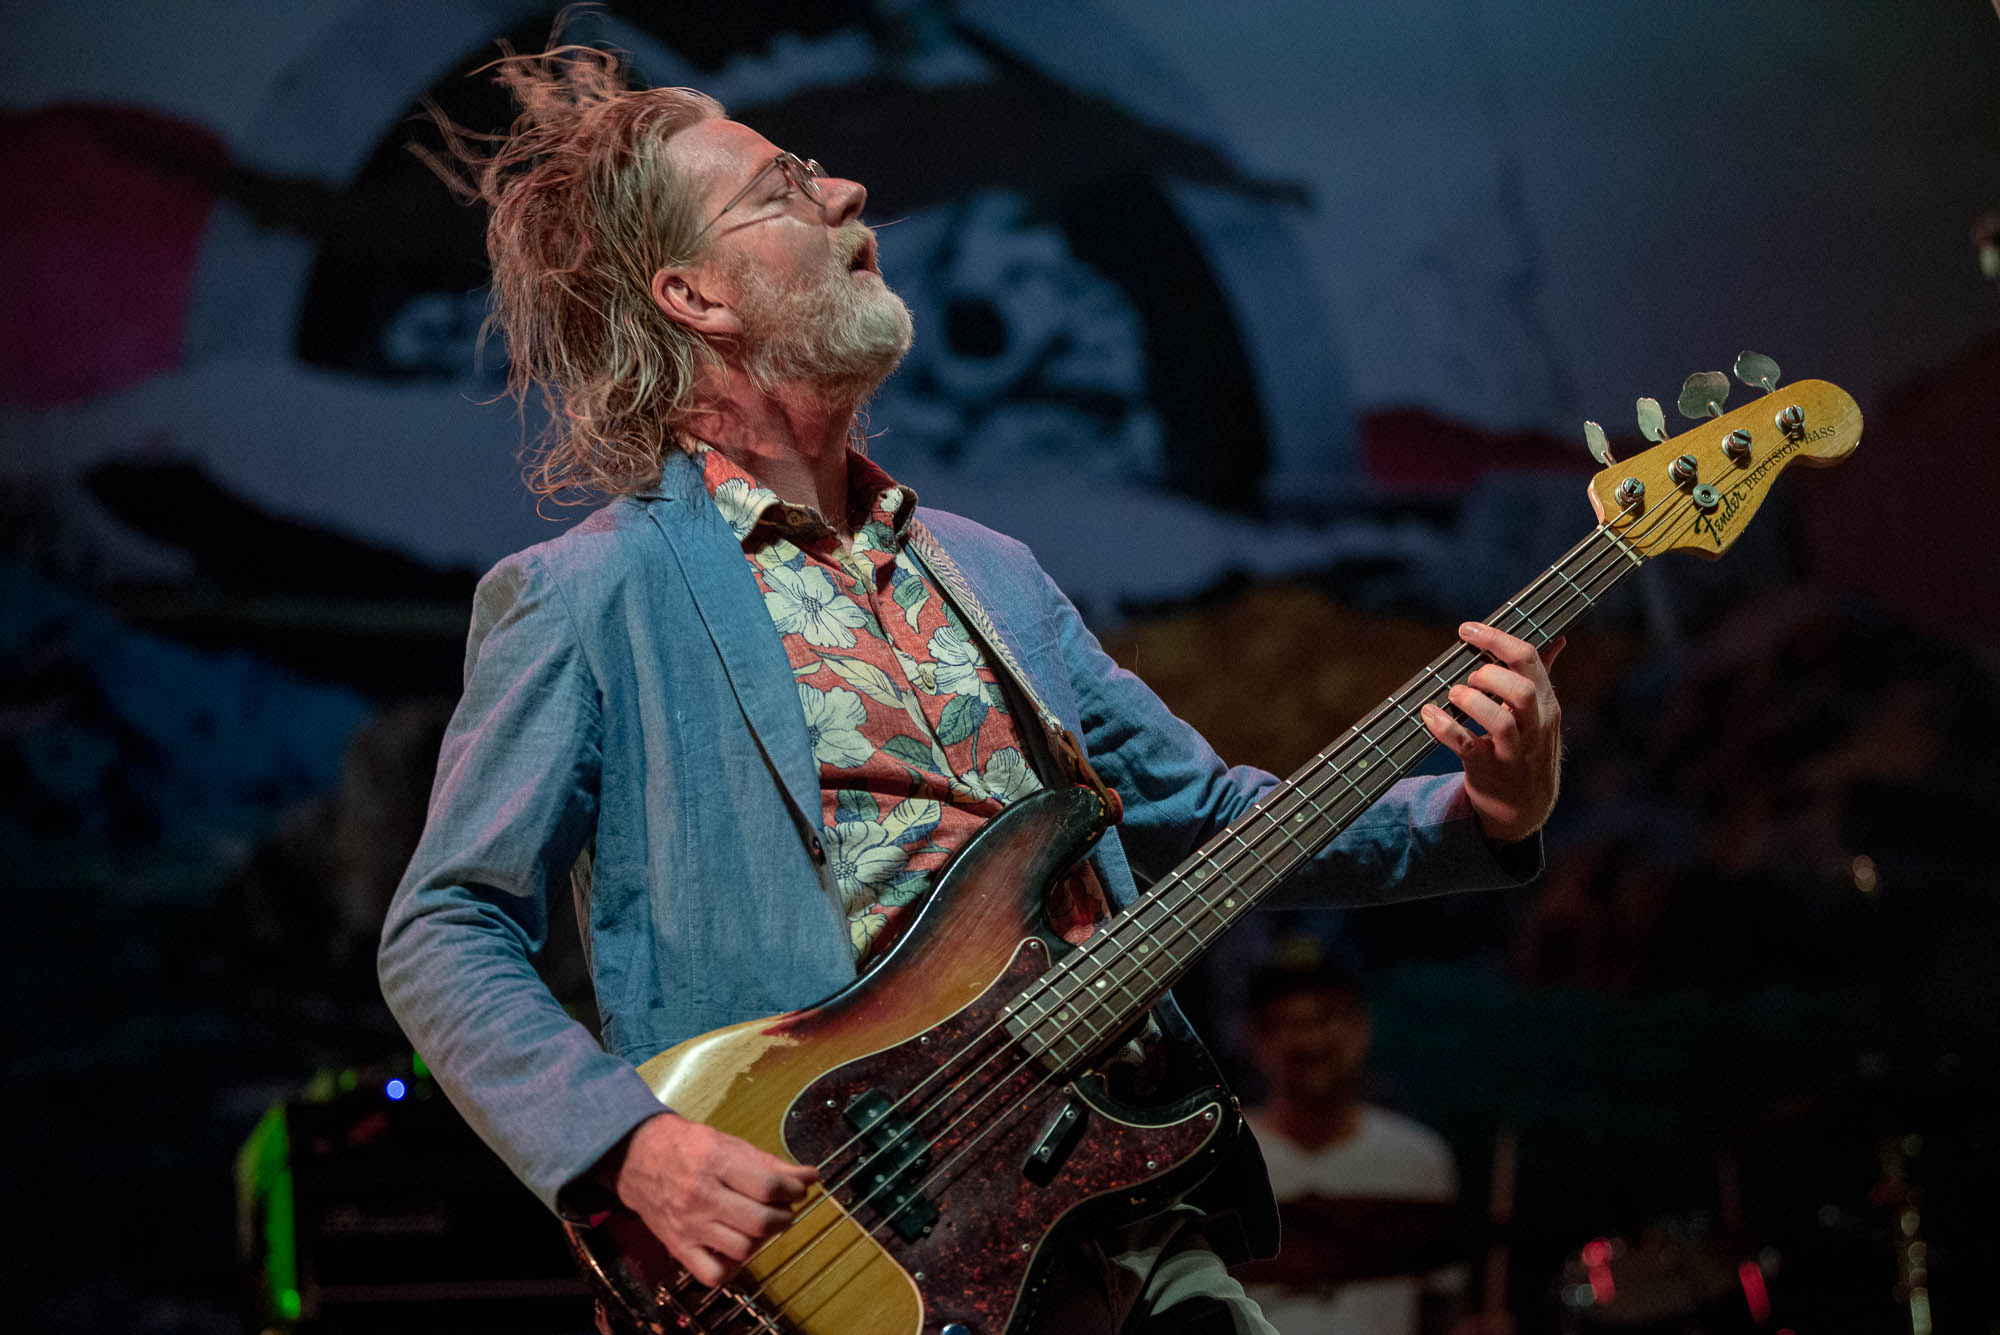 Brendan Canning of Broken Social Scene during their performance at BRIC Celebrate Brooklyn! at Prospect Park Bandshell on Thursday, July 25, 2019.